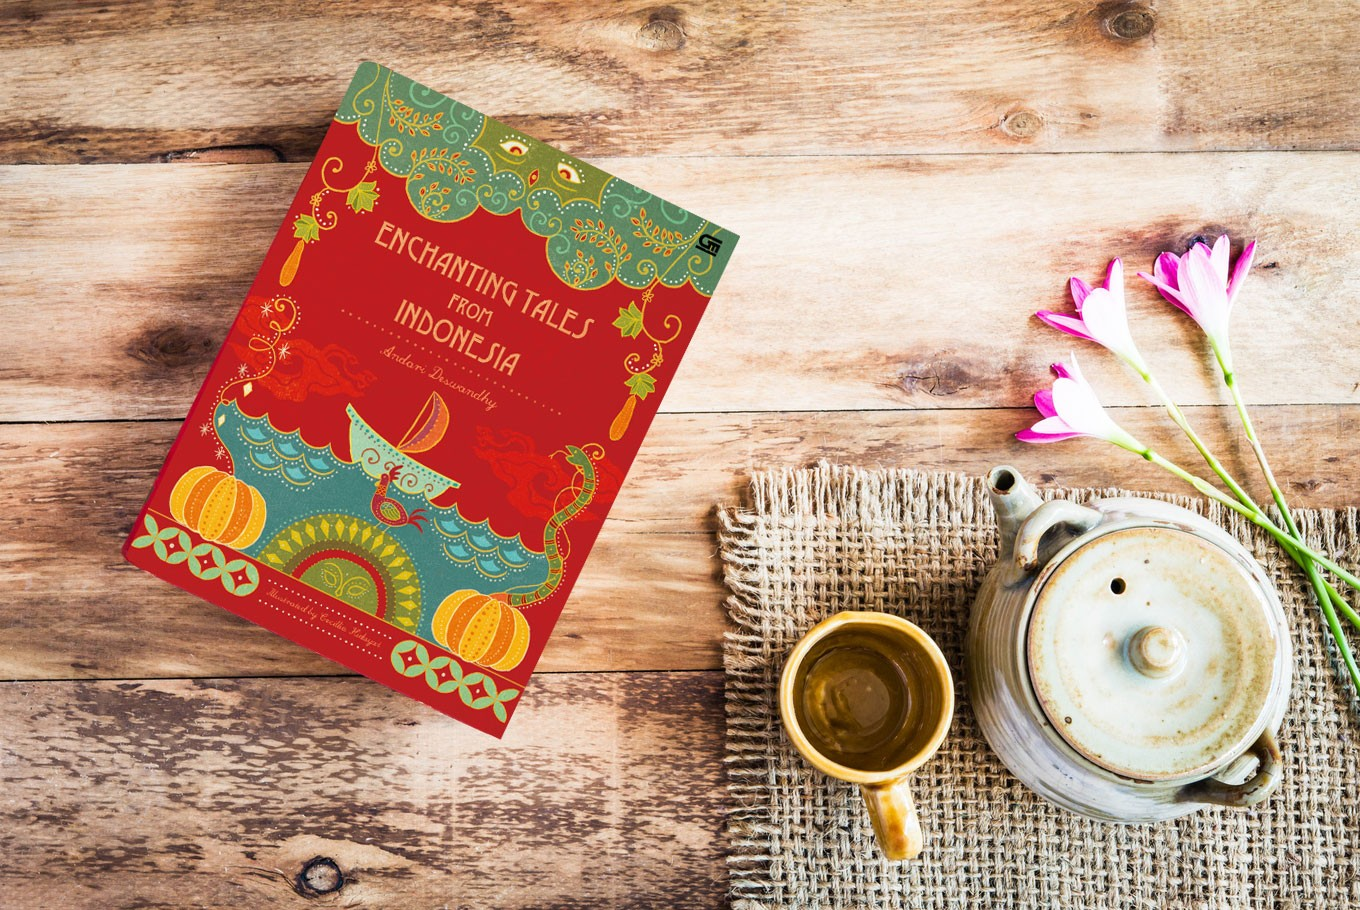 'Enchanting Tales from Indonesia'